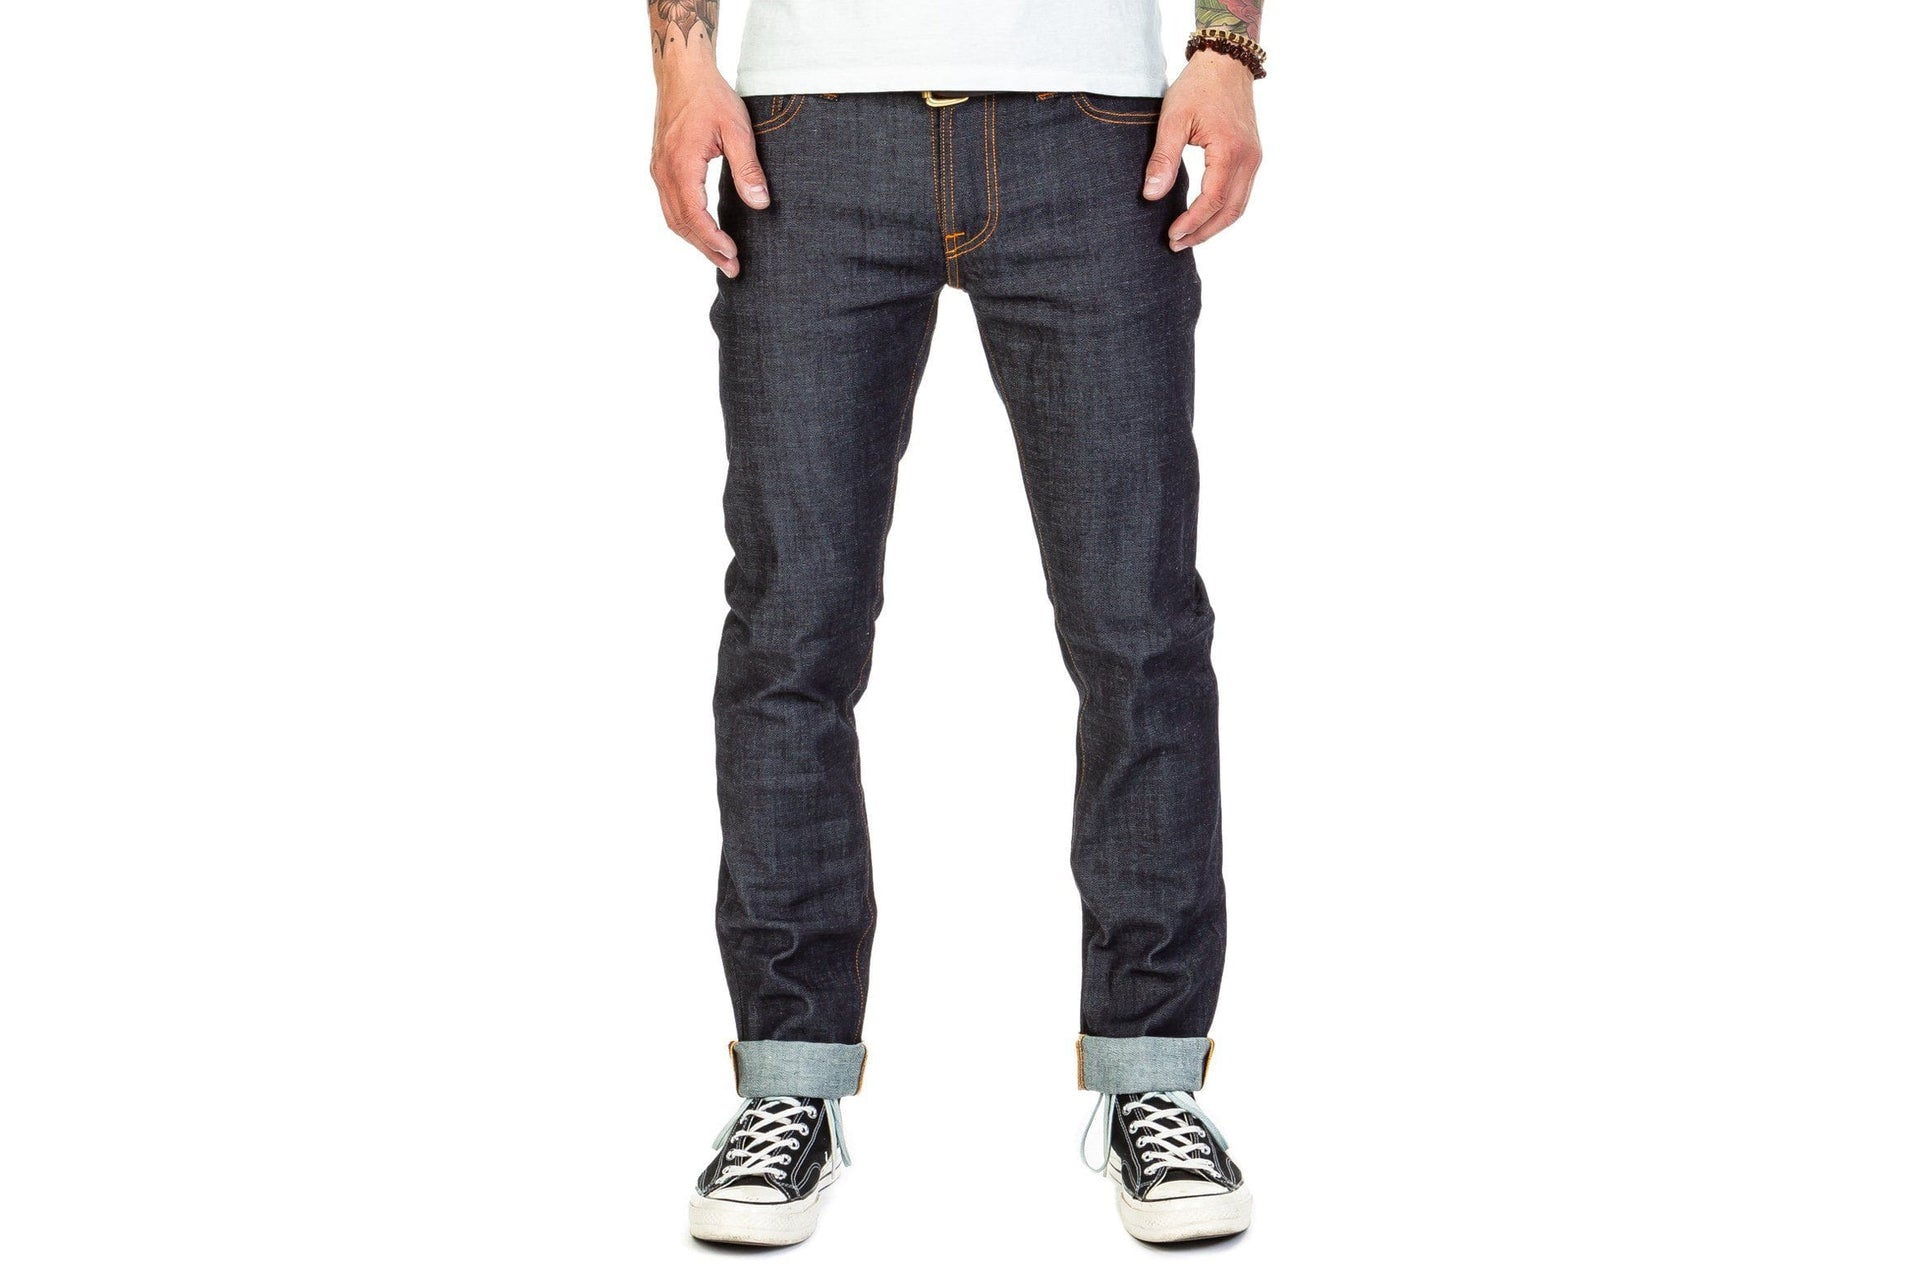 THIN FINN DRY TWILL MENS SOFTGOODS NUDIE JEANS